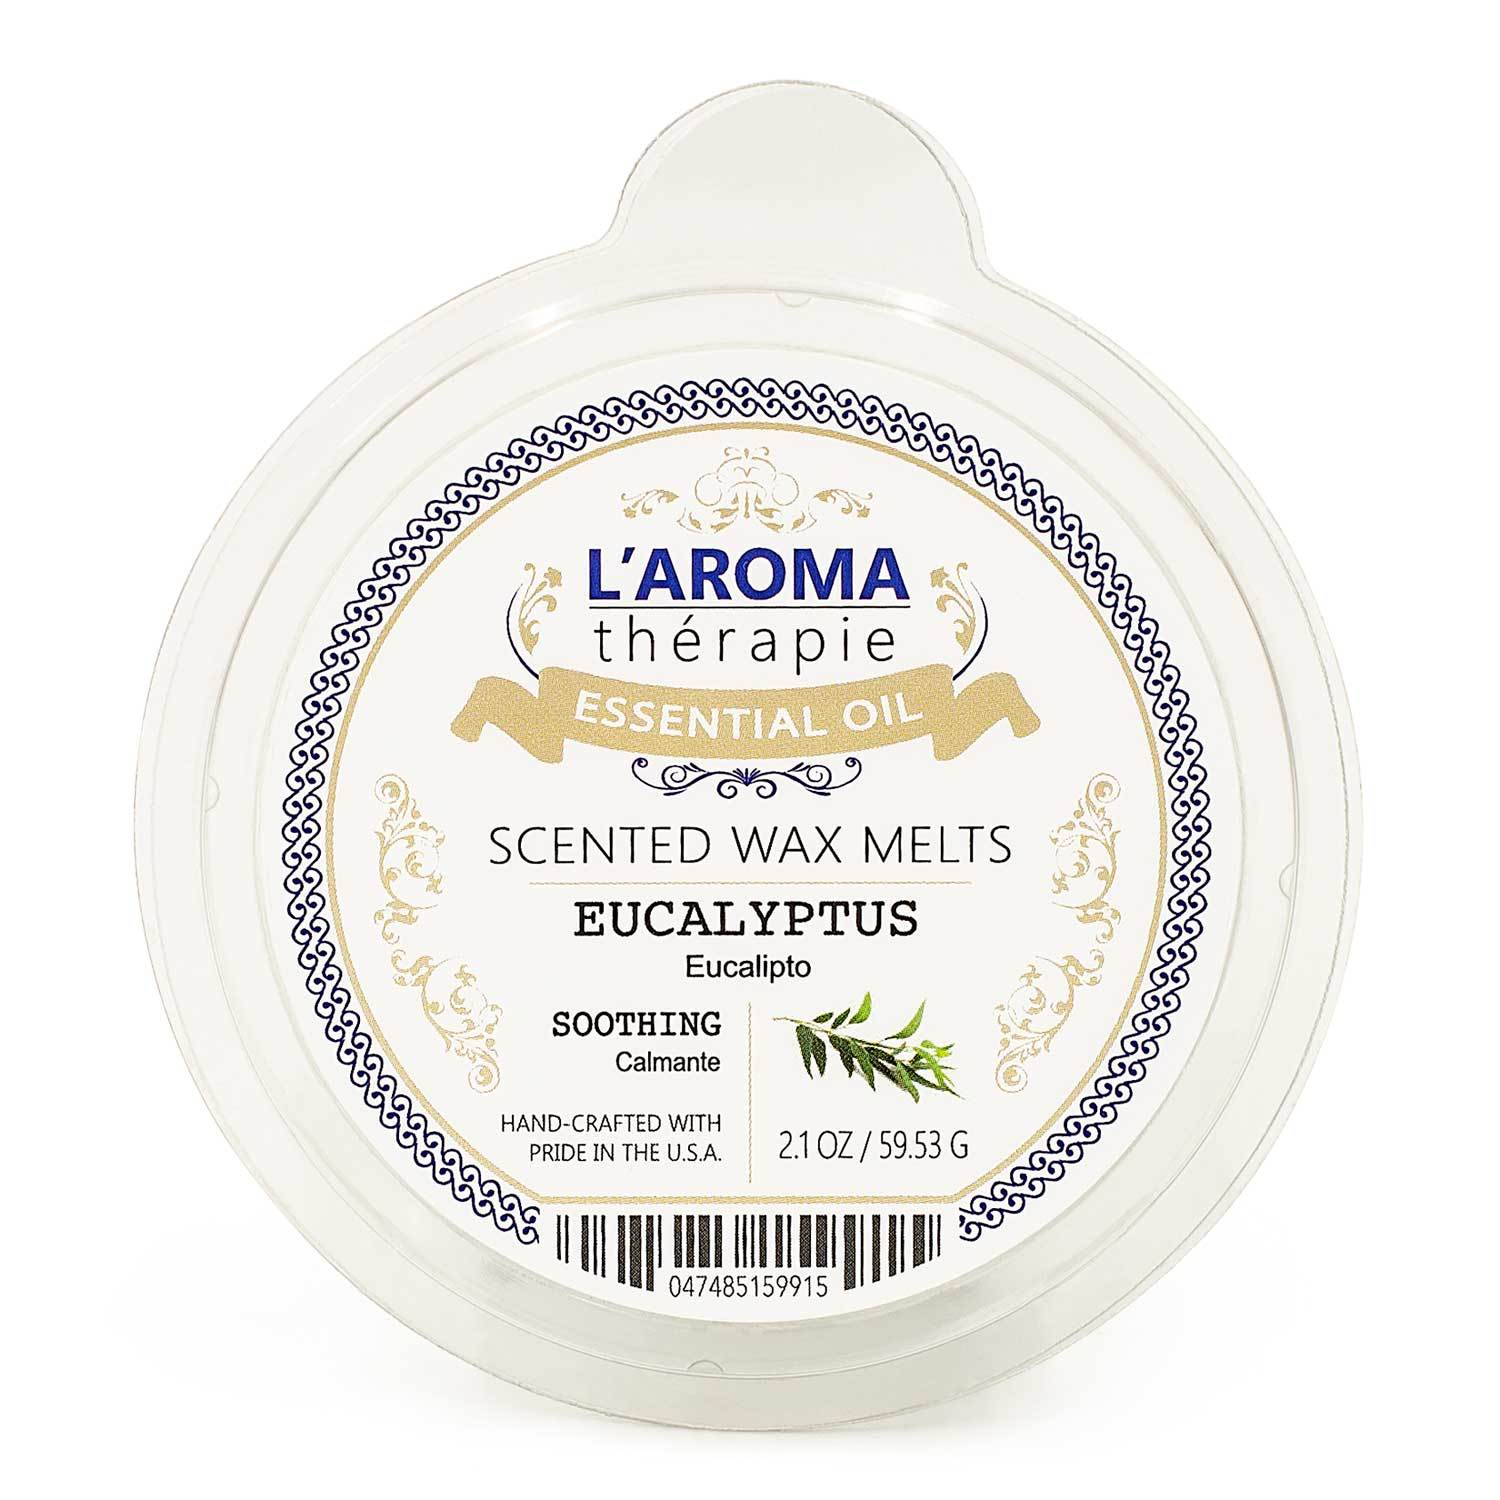 Eucalyptus Essential Oil Wax Melts